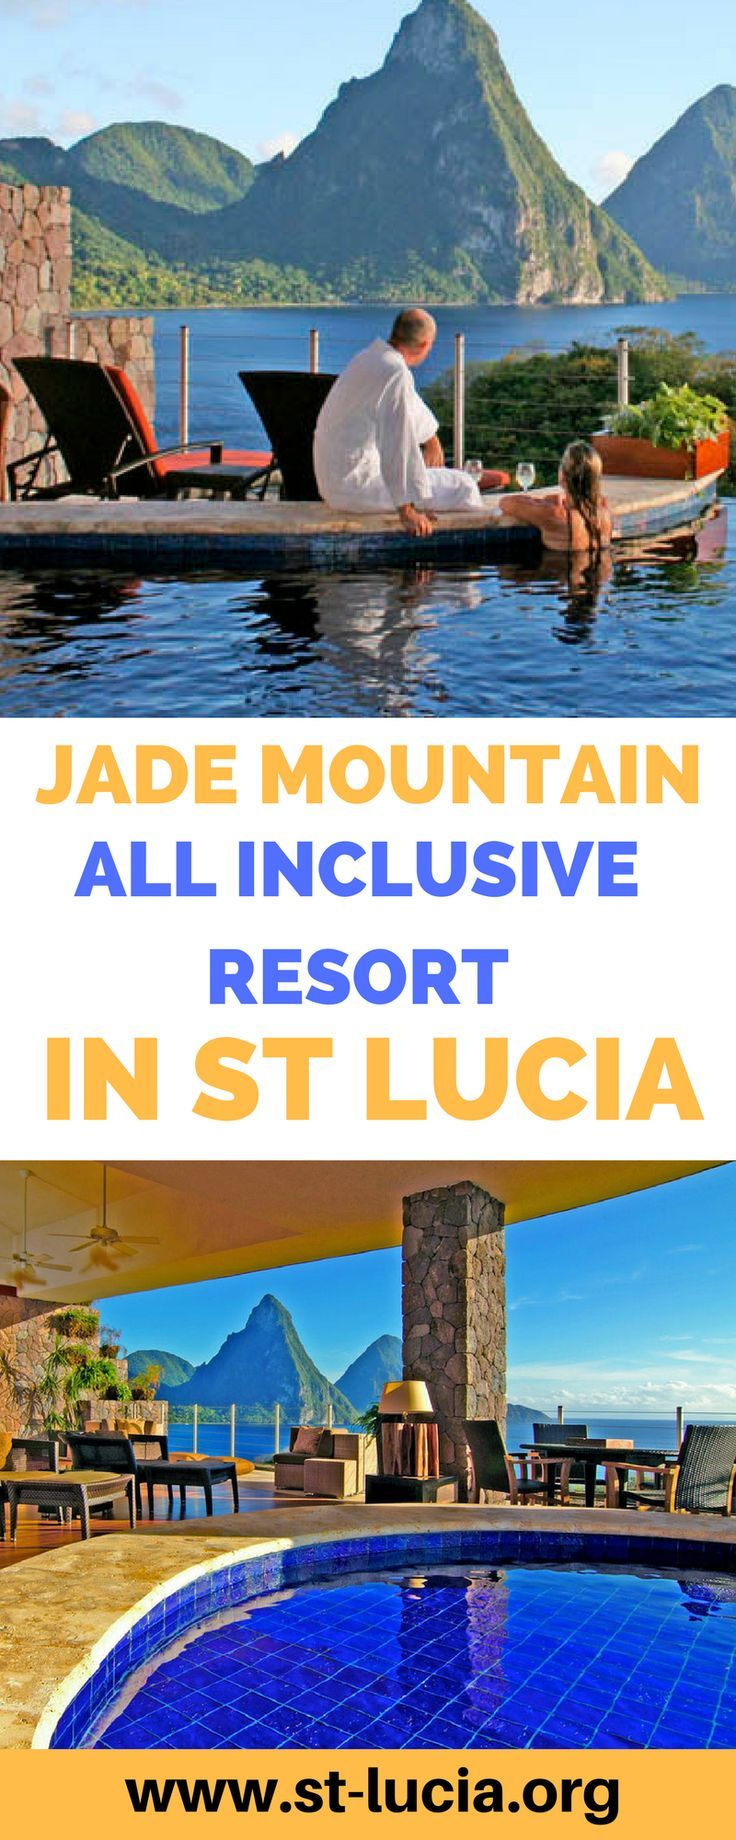 Jade Mountain St Lucia is the best Hotel in St Lucia. Get married at the Jade Mountain hotel in St Lucia. Jade Mountain all inclusive resort in St Lucia. Book your next vacation at the Jade Mountains. #StLucia #JadeMountainsstlucia #Stluciatravels